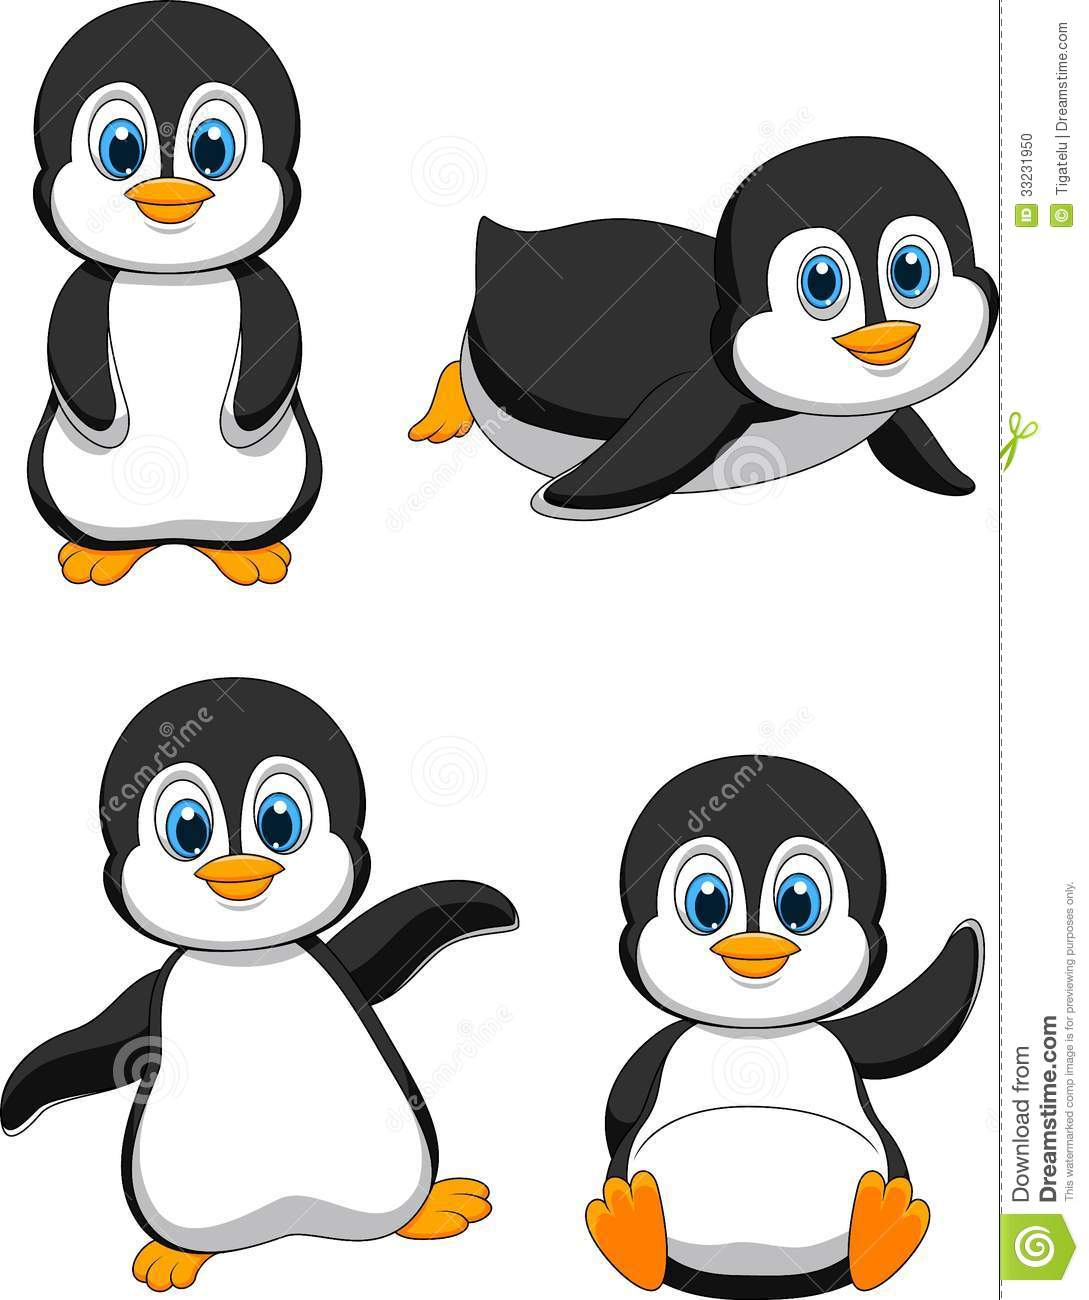 Images of cute cartoon penguins - photo#26